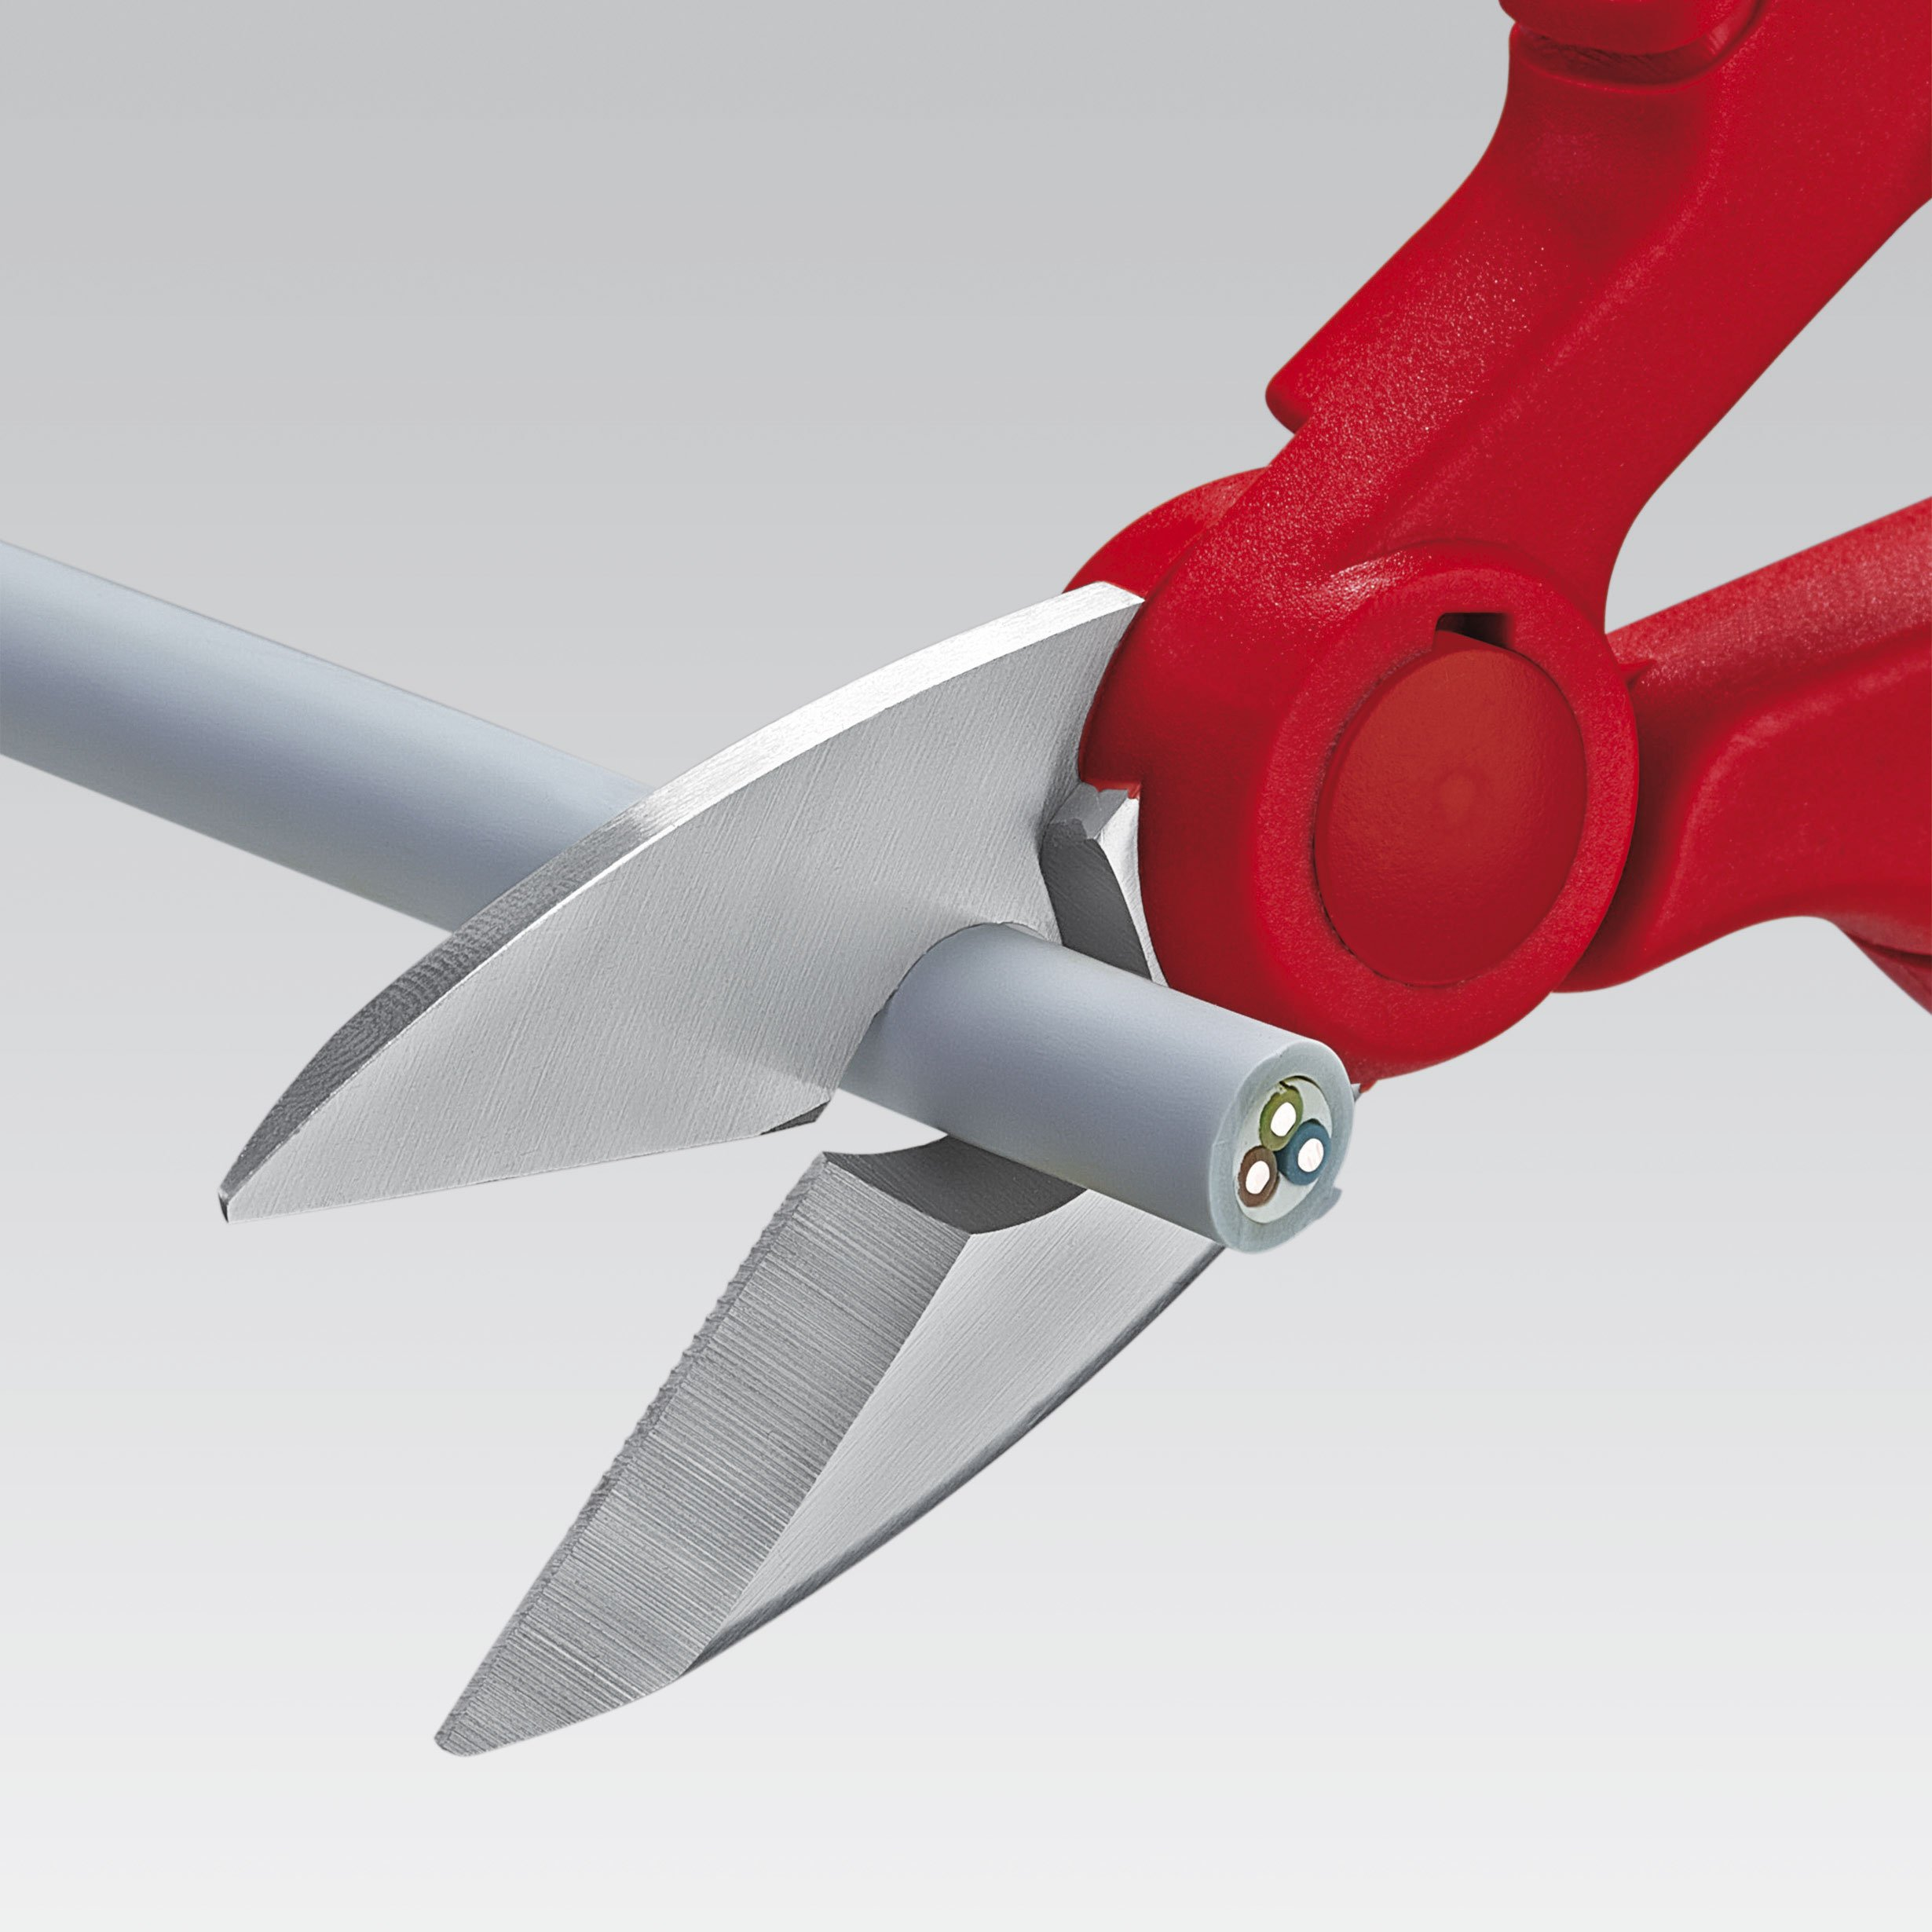 Knipex 95 05 155 SB Electrician's Shears 6,1'' by KNIPEX Tools (Image #4)